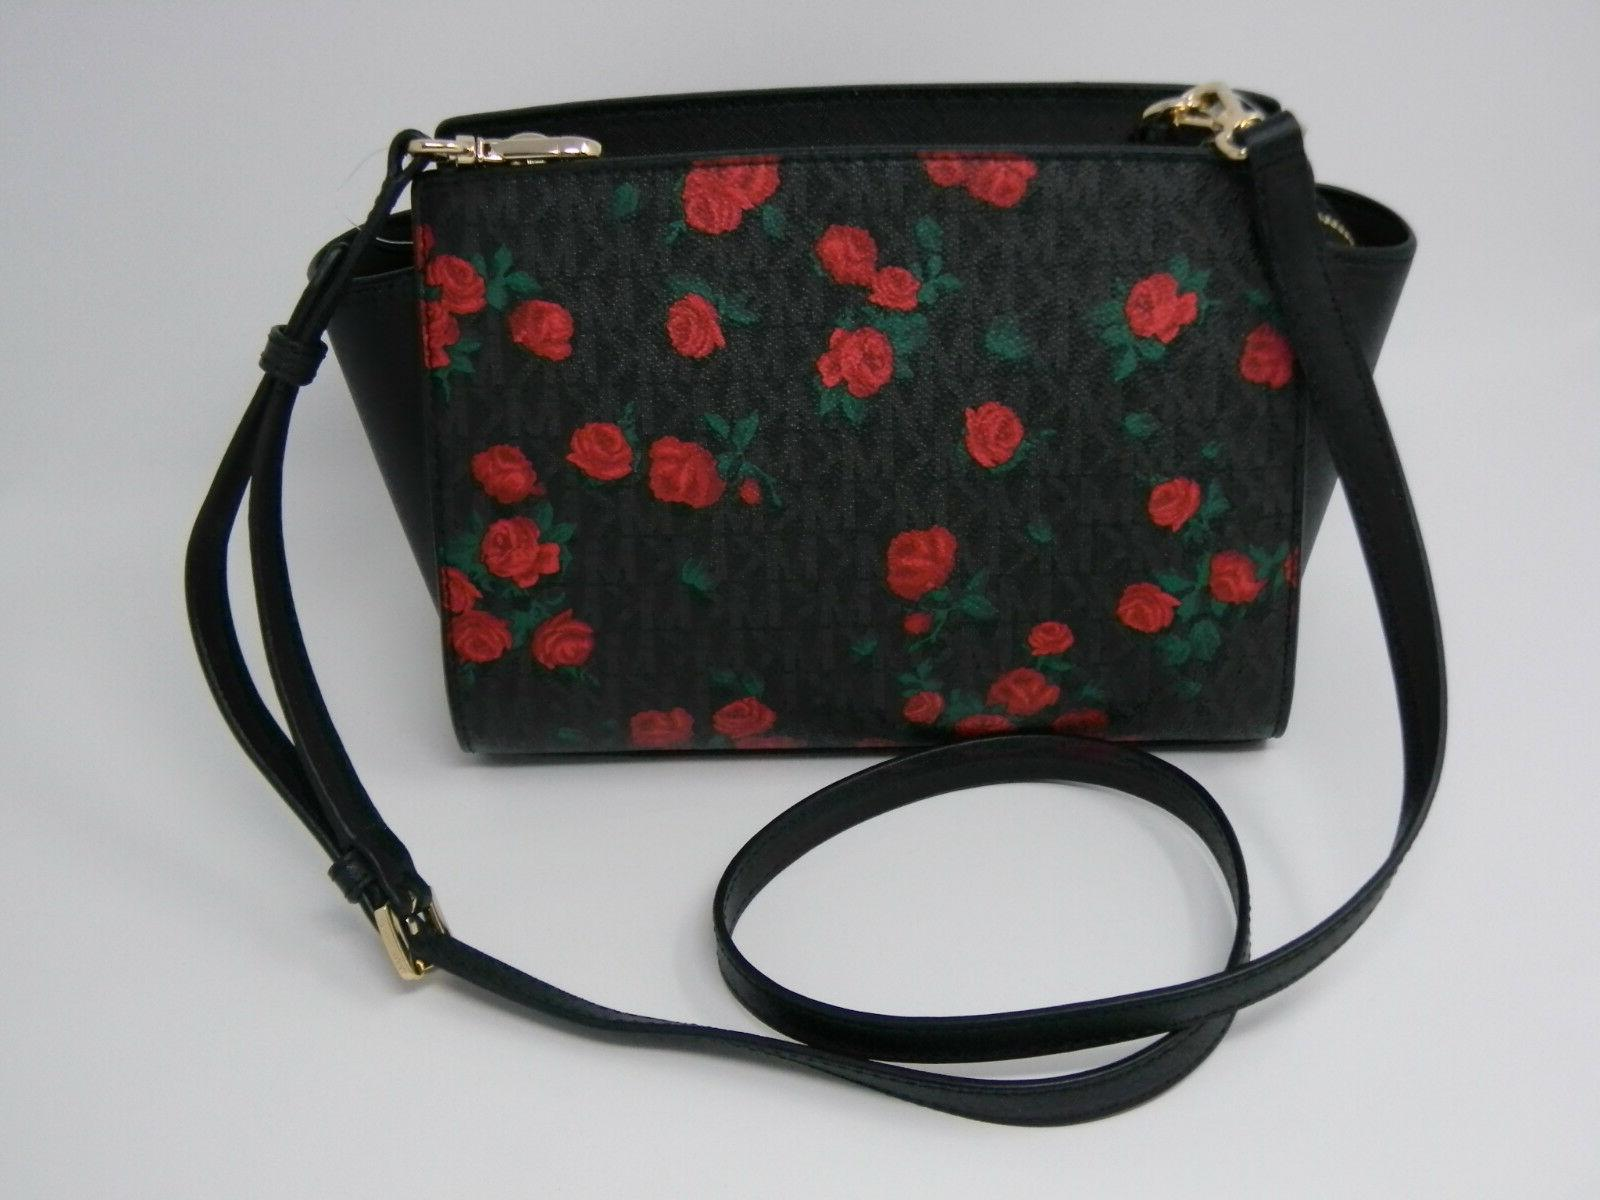 New Kors Black Signature Red Floral